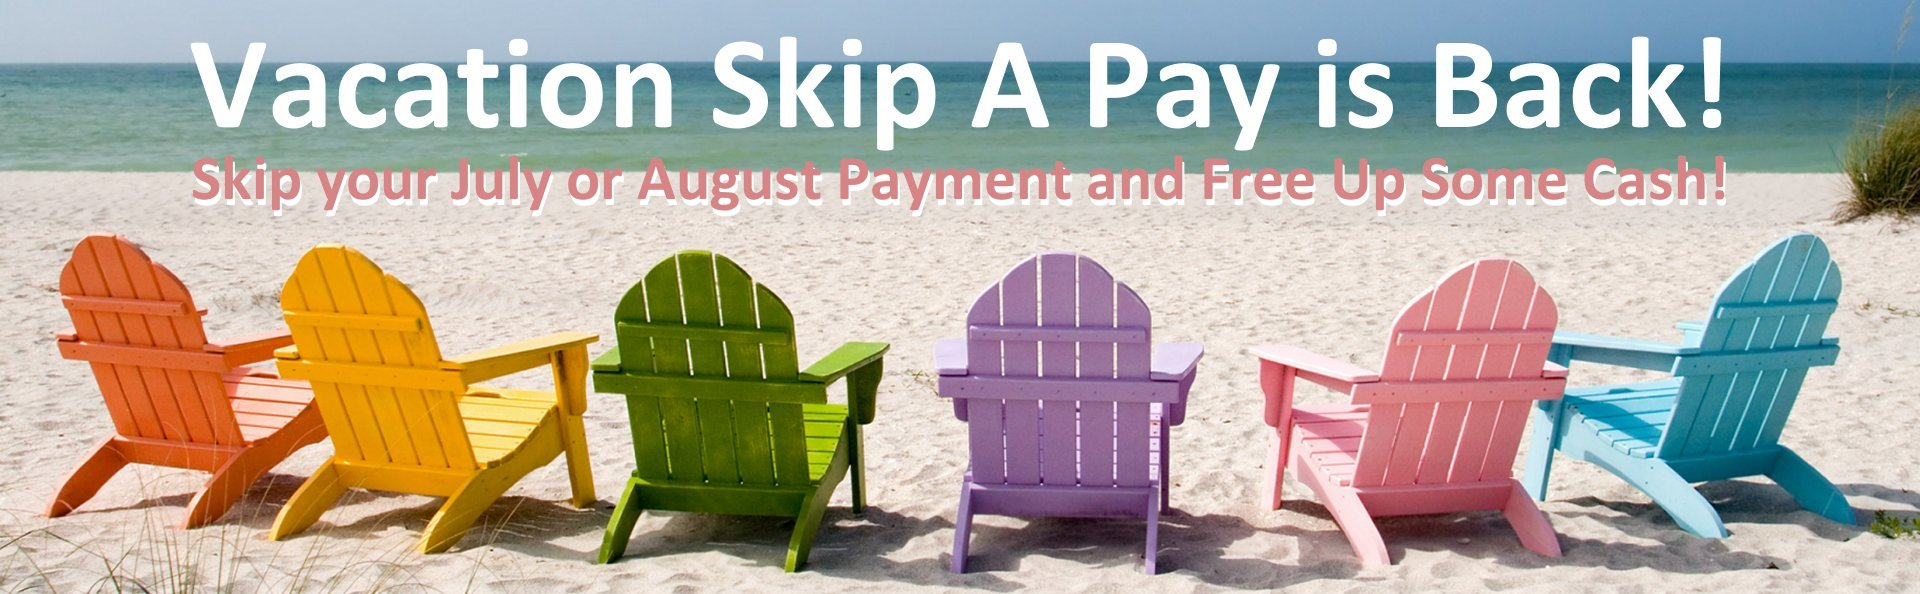 Vacation Skip A Pay is Back at Bethlehem 1st Federal Credit Union. Click for details...